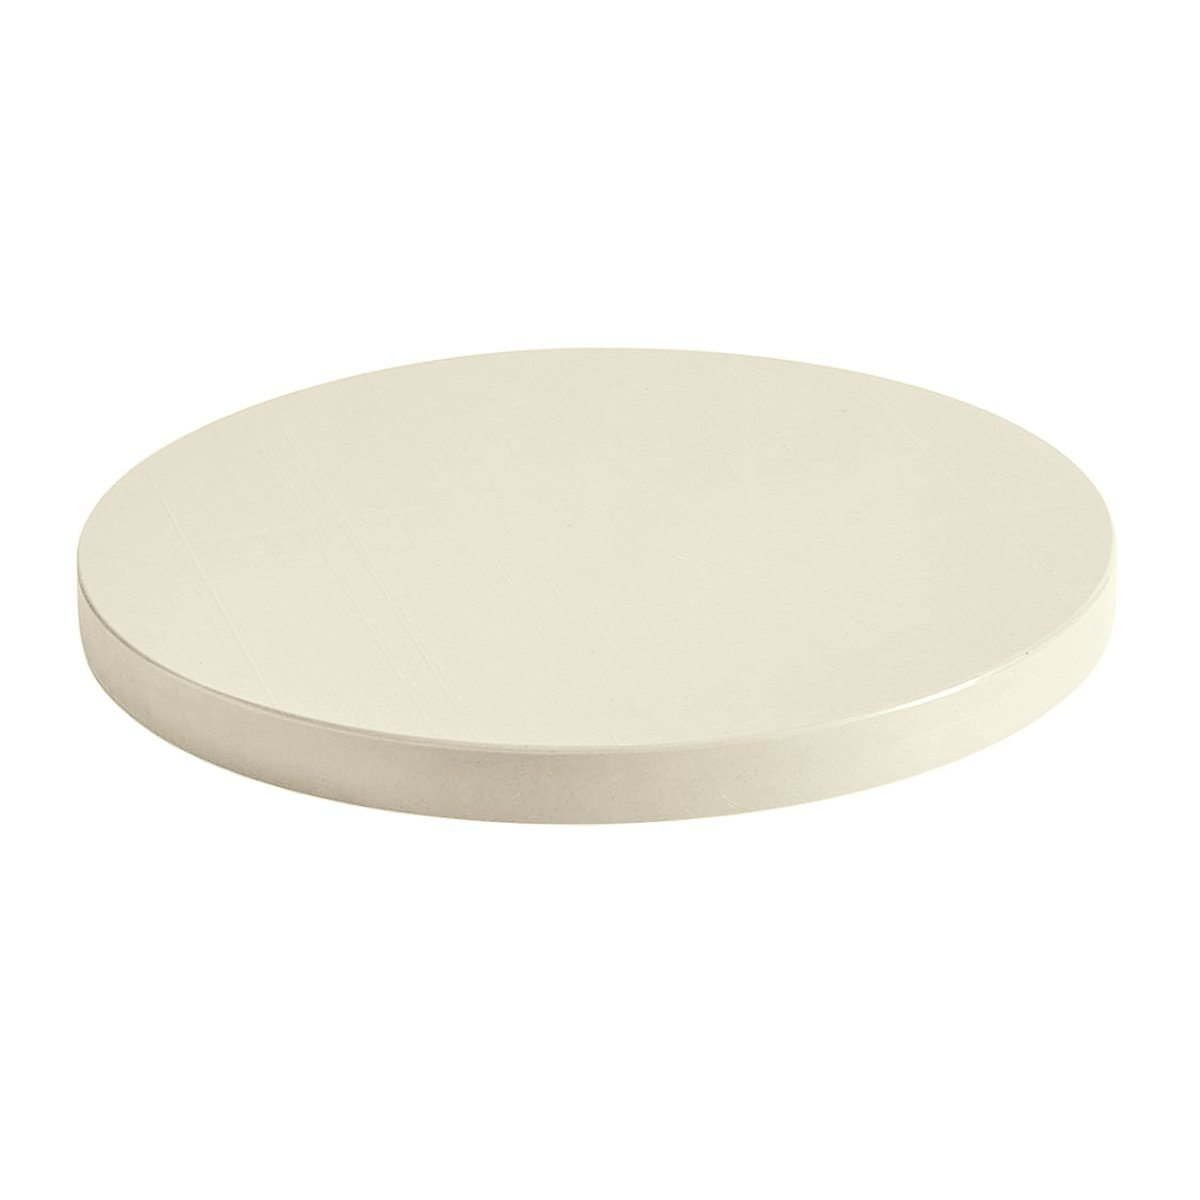 HAY Chopping Board Snijplank - Rond L/Off White